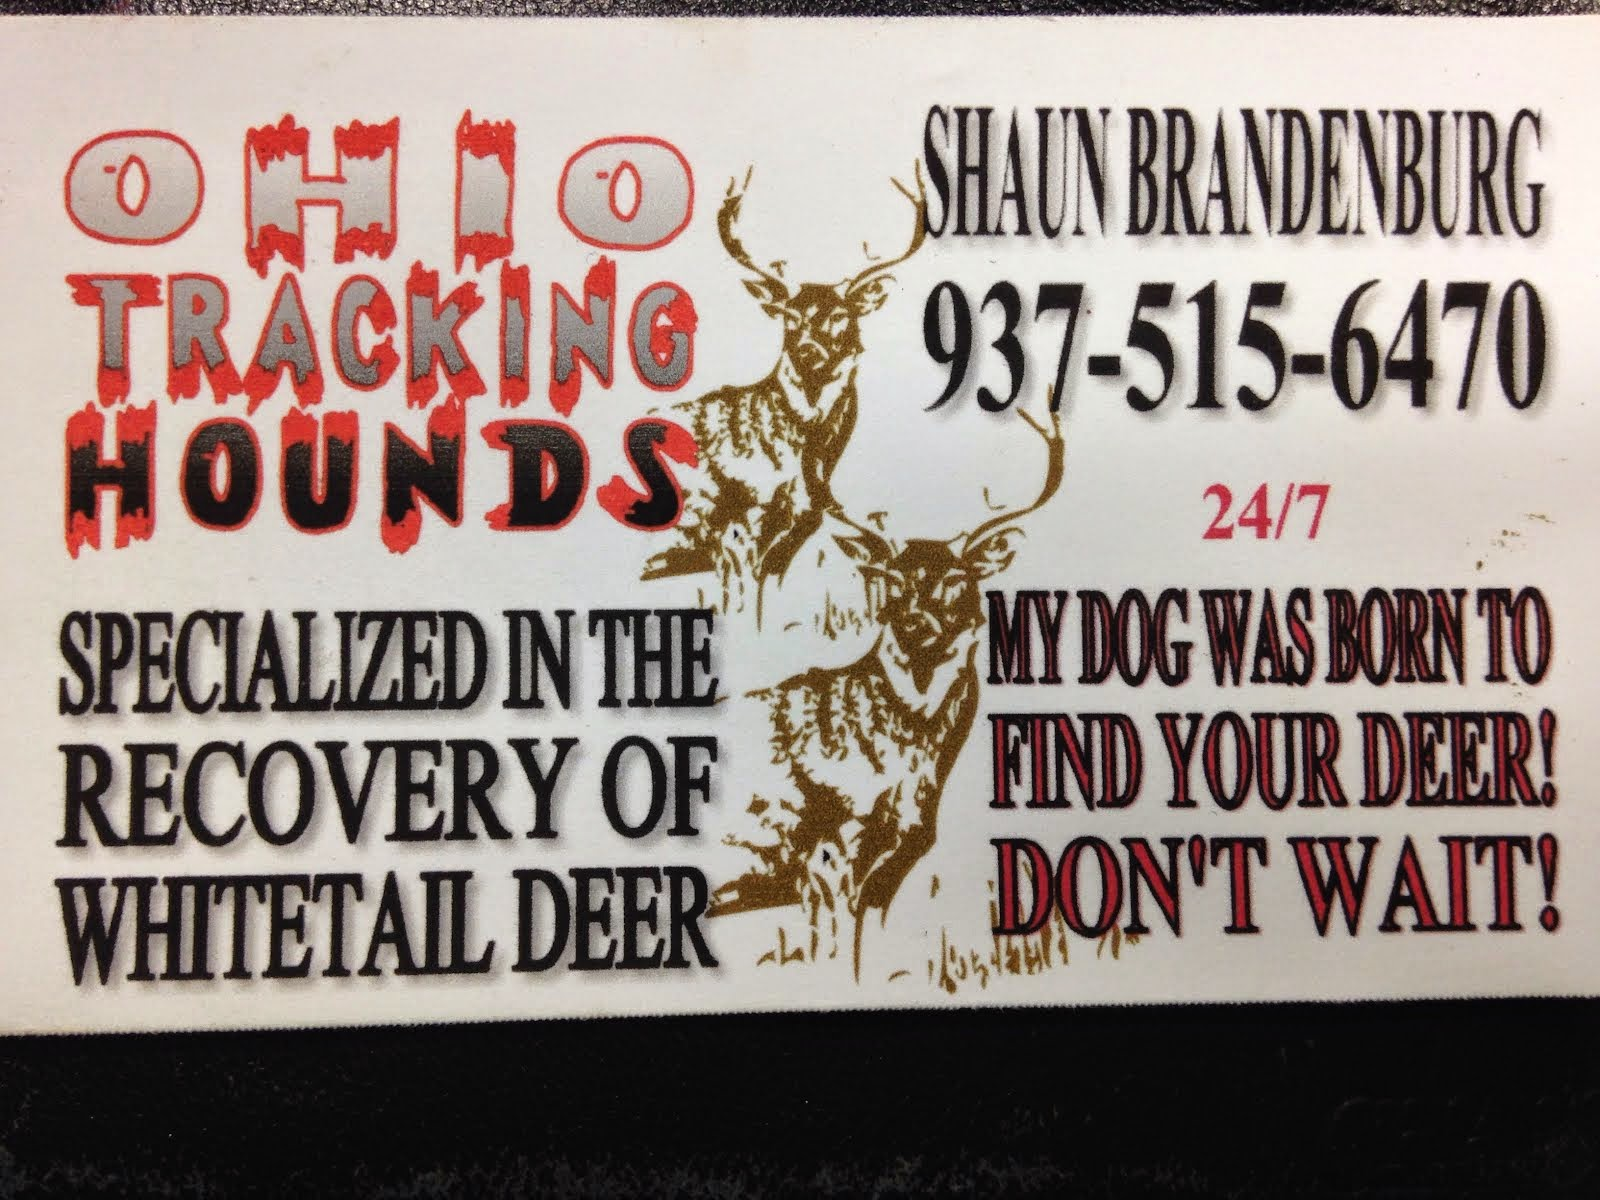 Ohio Blood deer tracking dogs